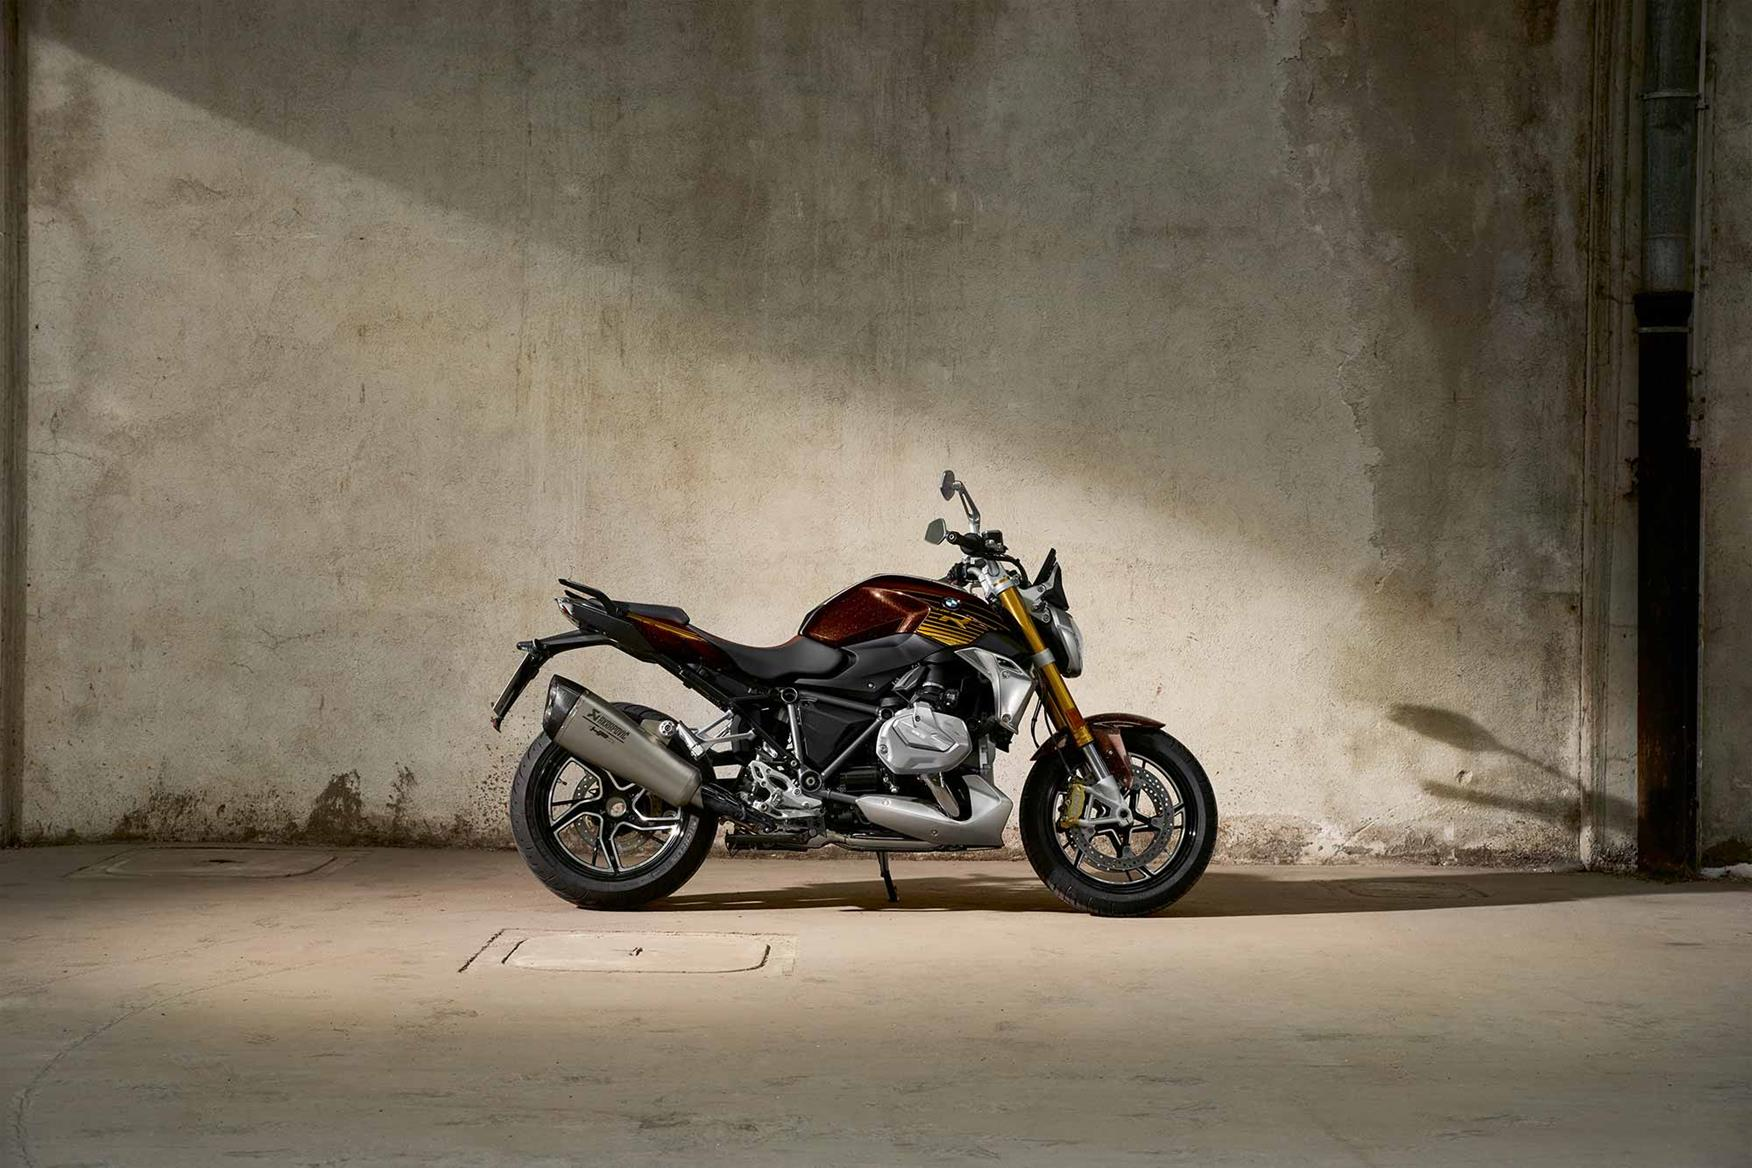 Eicma 2018: BMW reveal new R1250R and RS